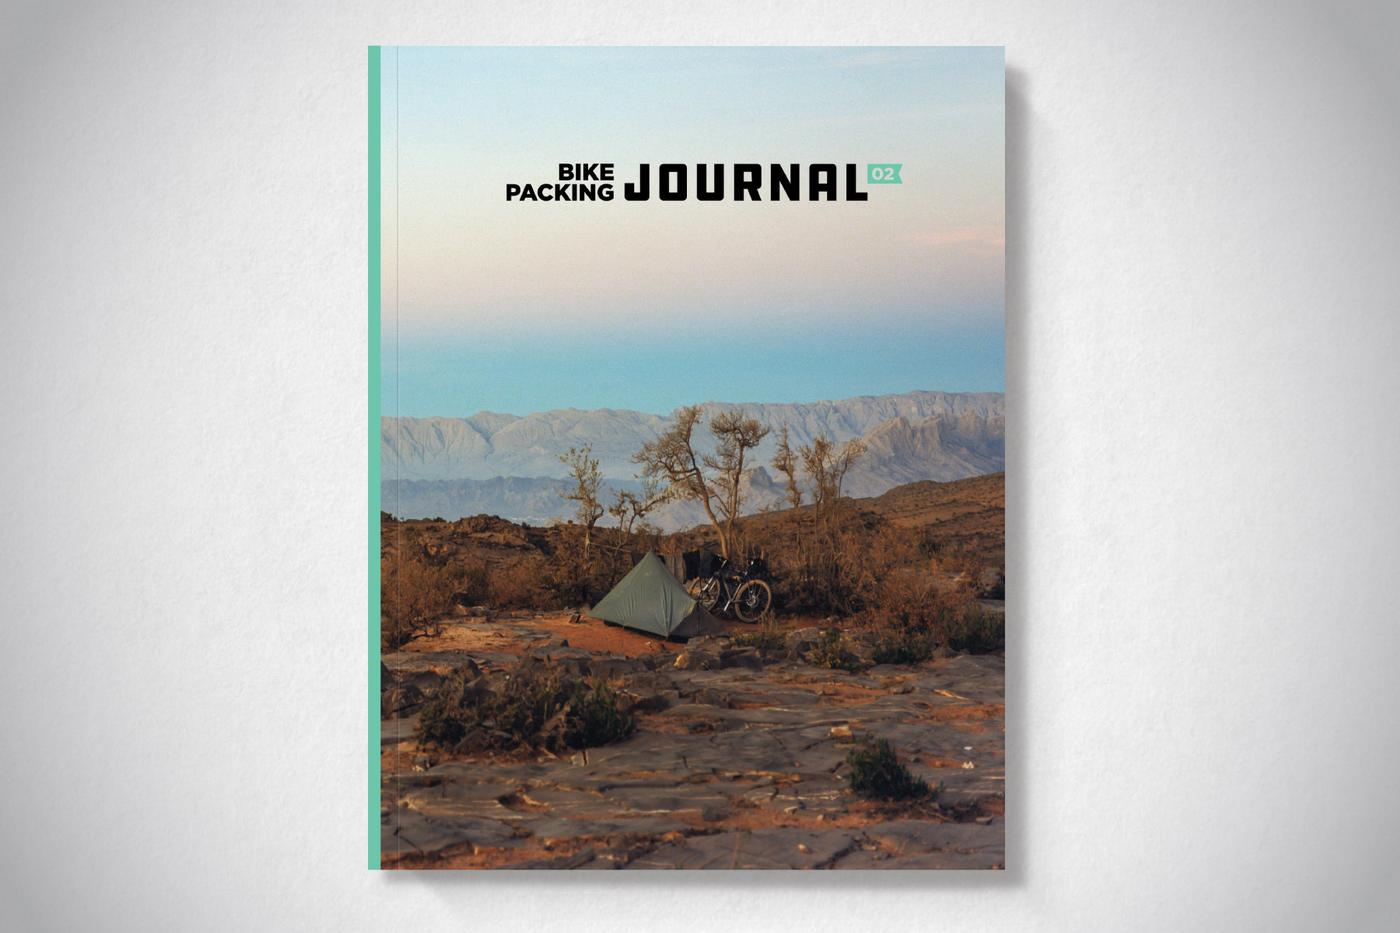 The Bikepacking Journal Issue 02